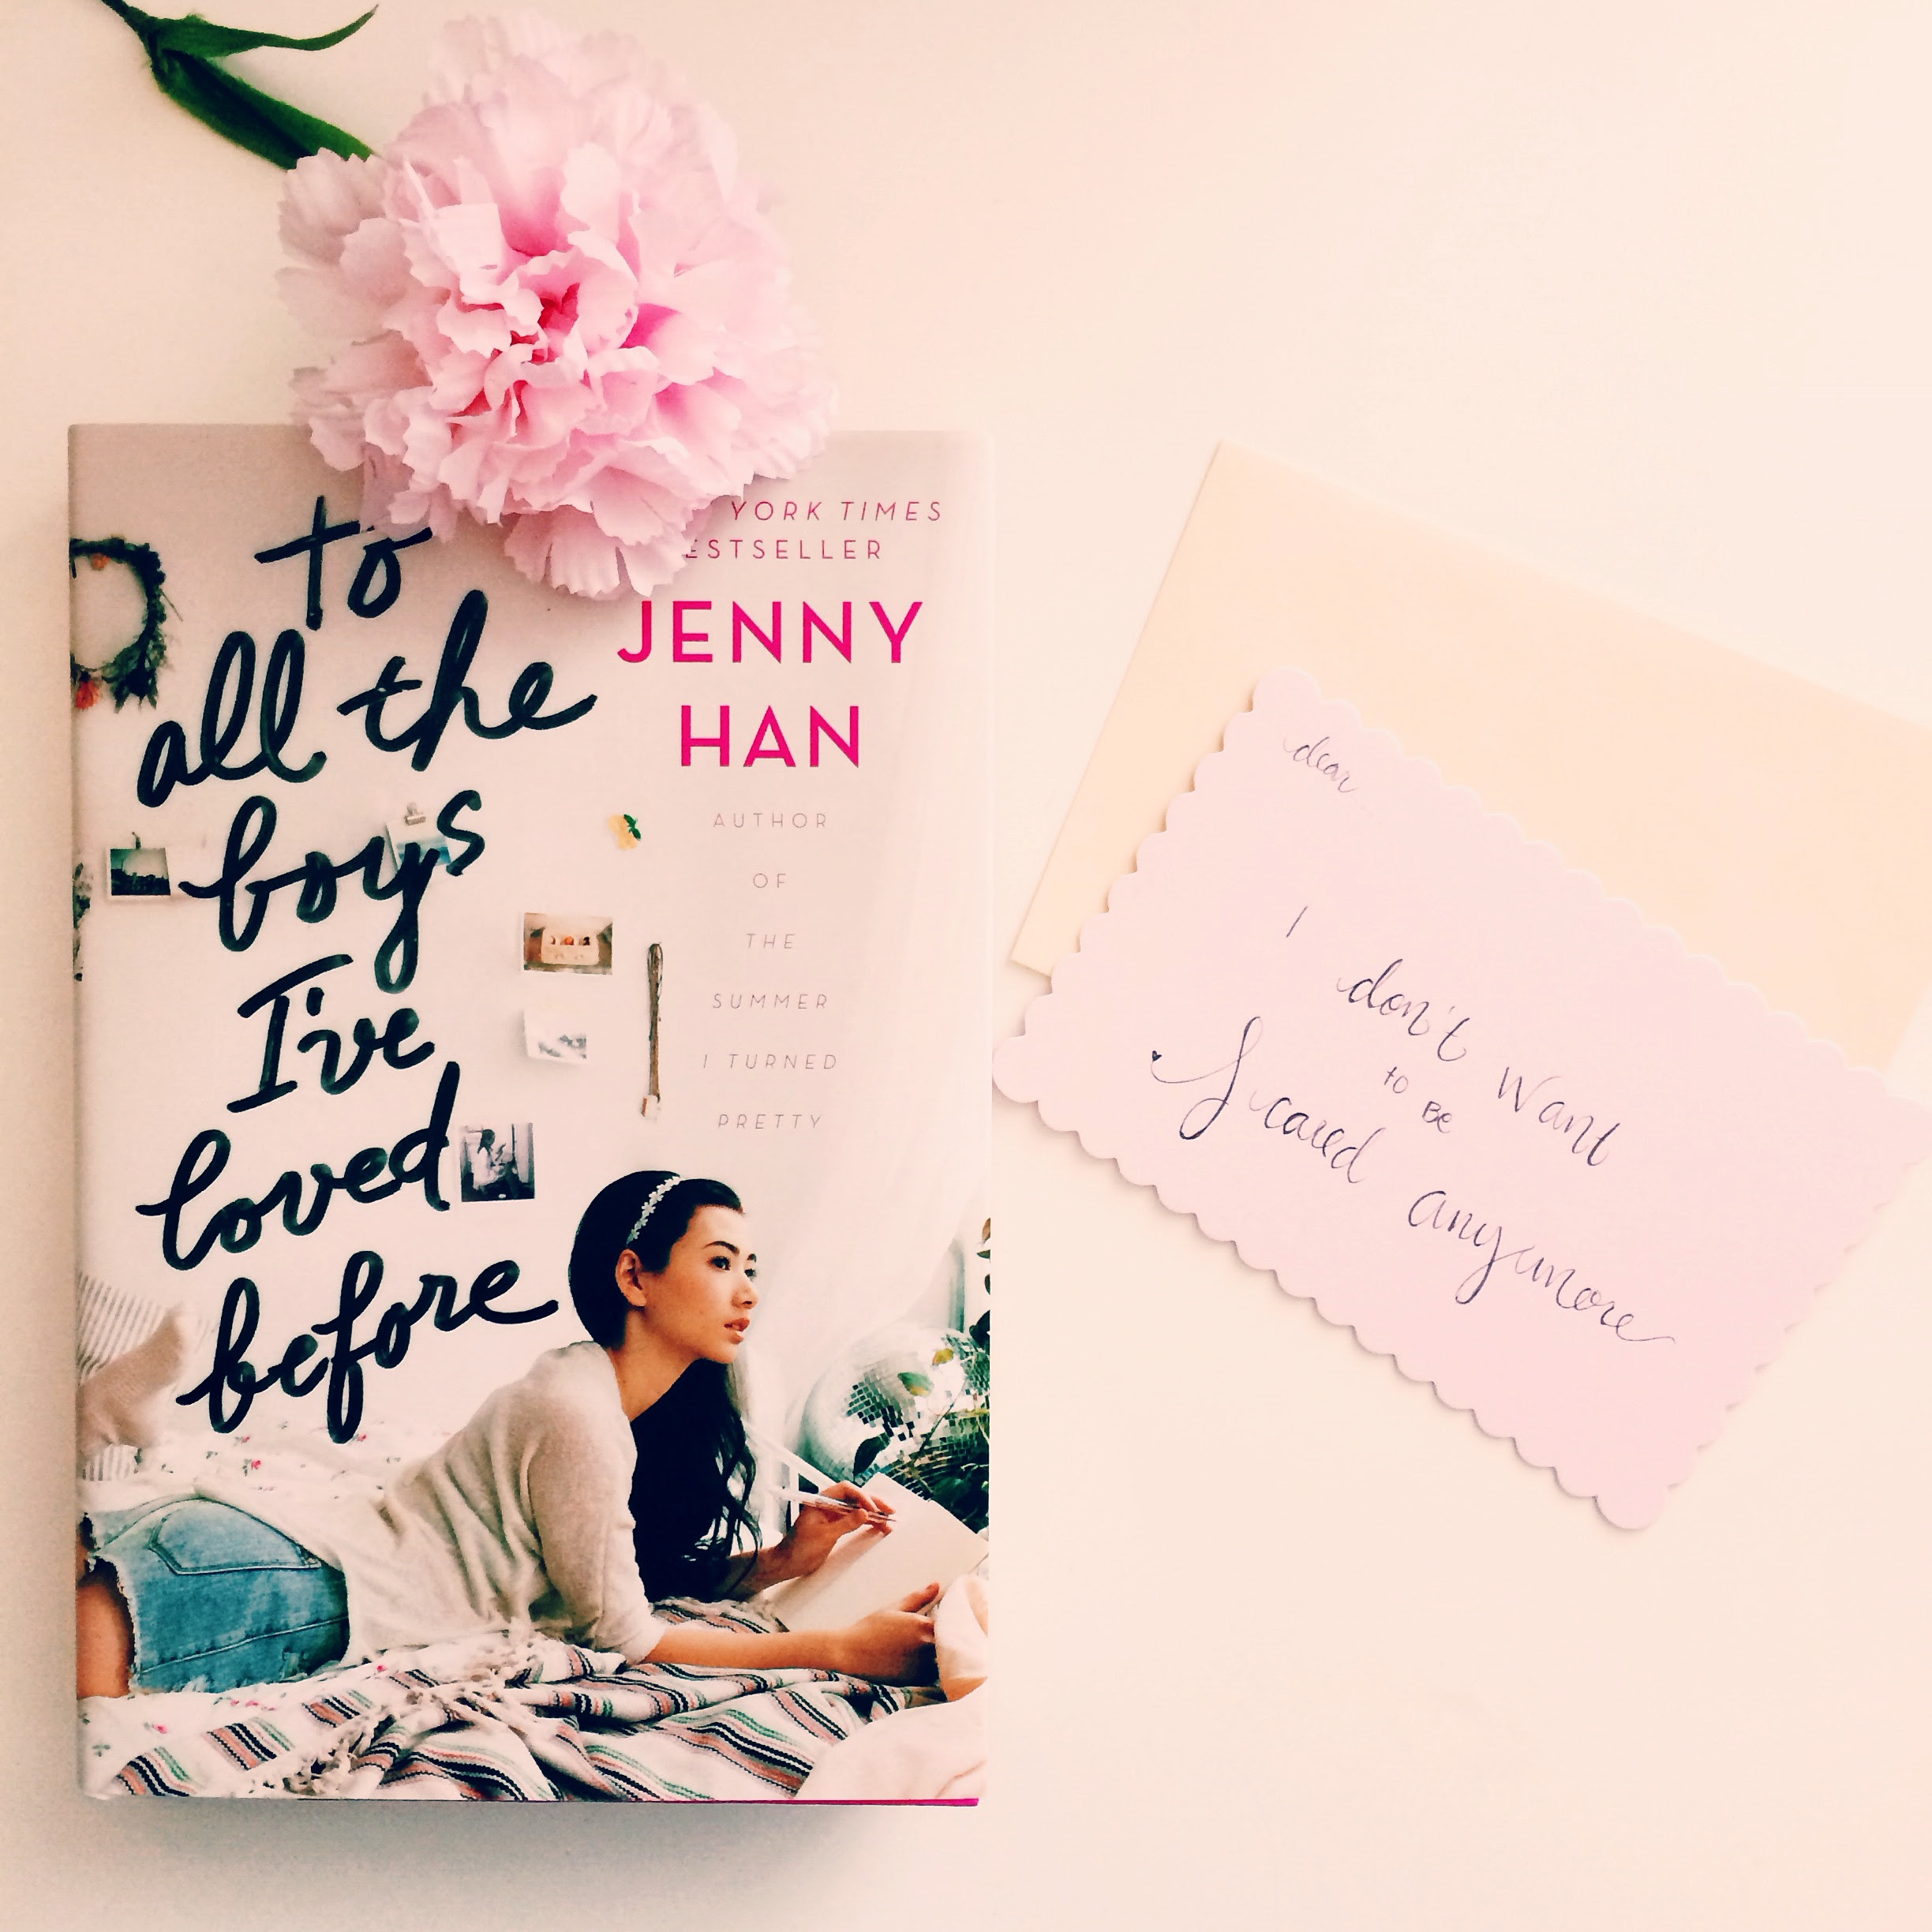 Movie Cant Buy Me Love To All The Boys Ive Loved Before Images